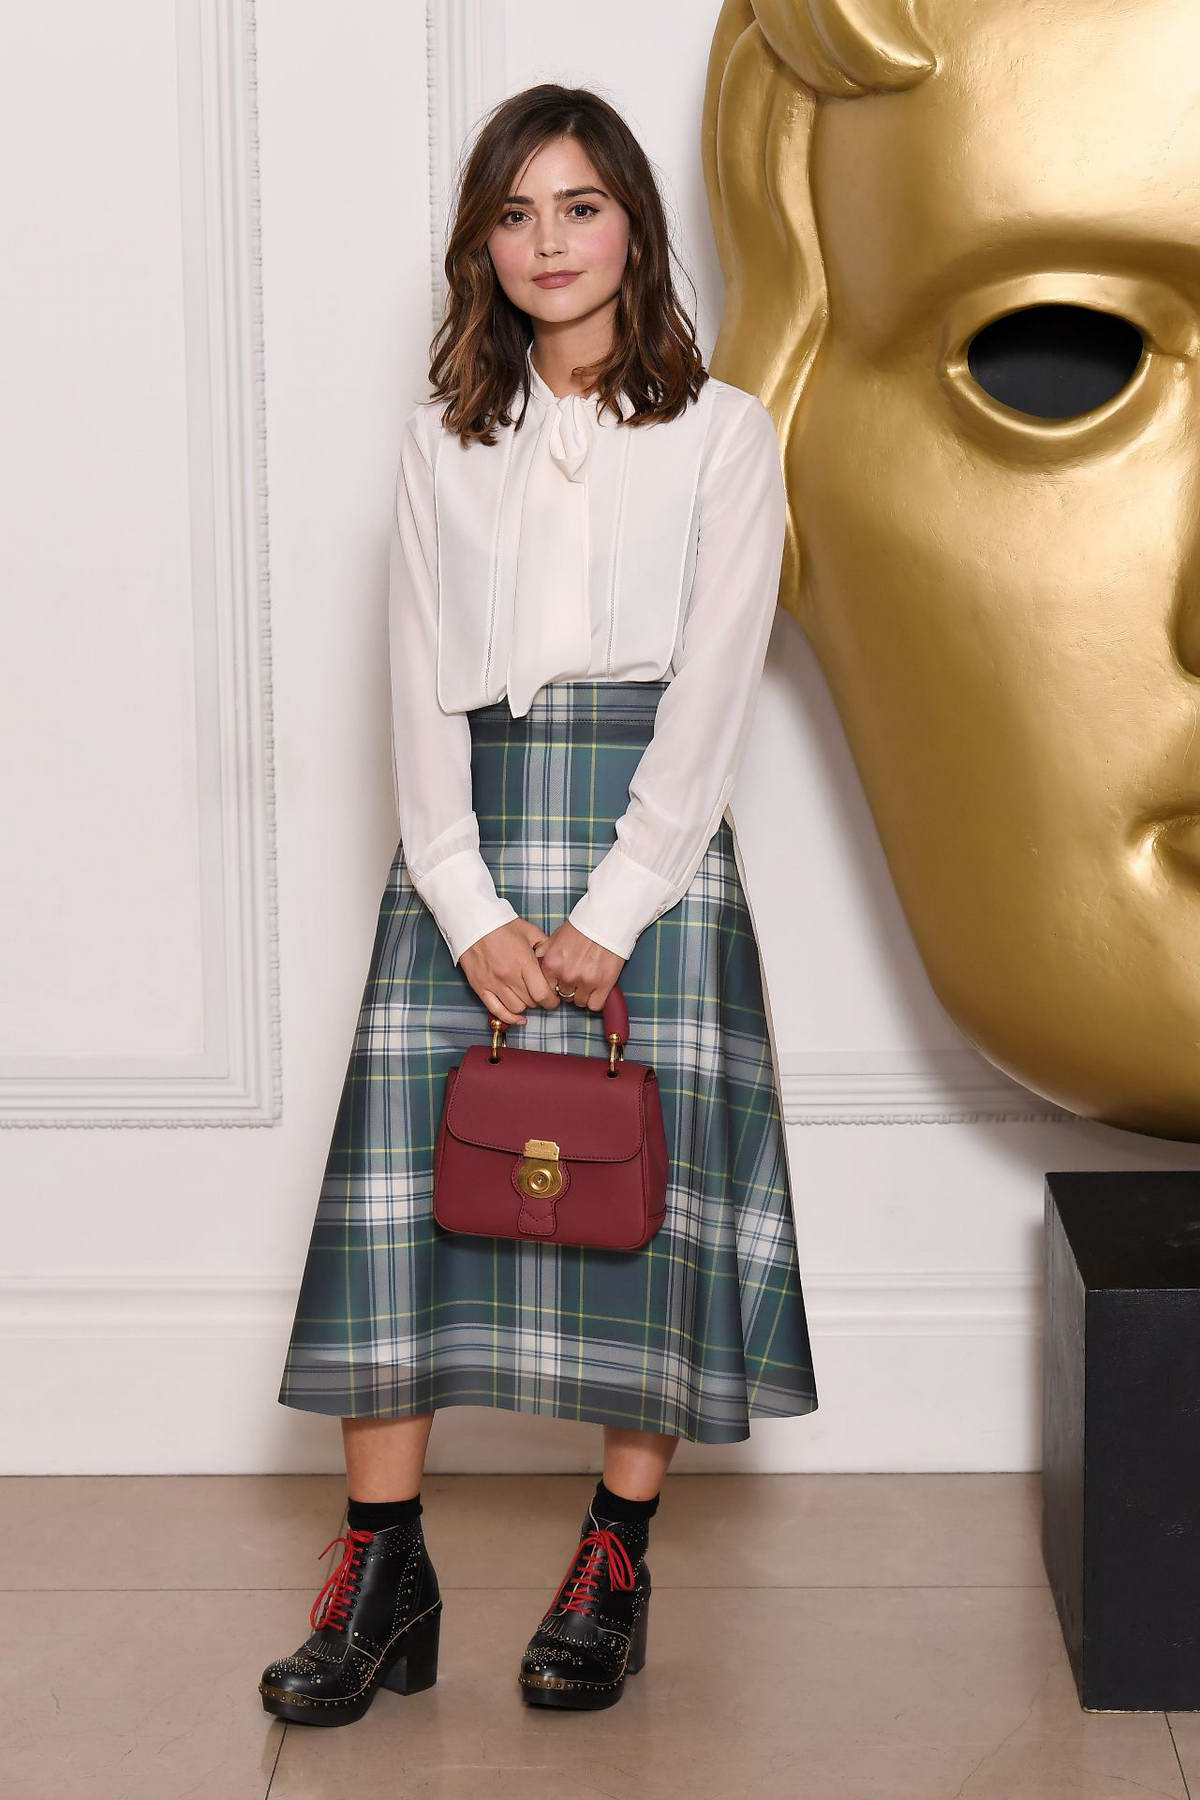 Jenna Coleman at BAFTA breakthrough brits in London